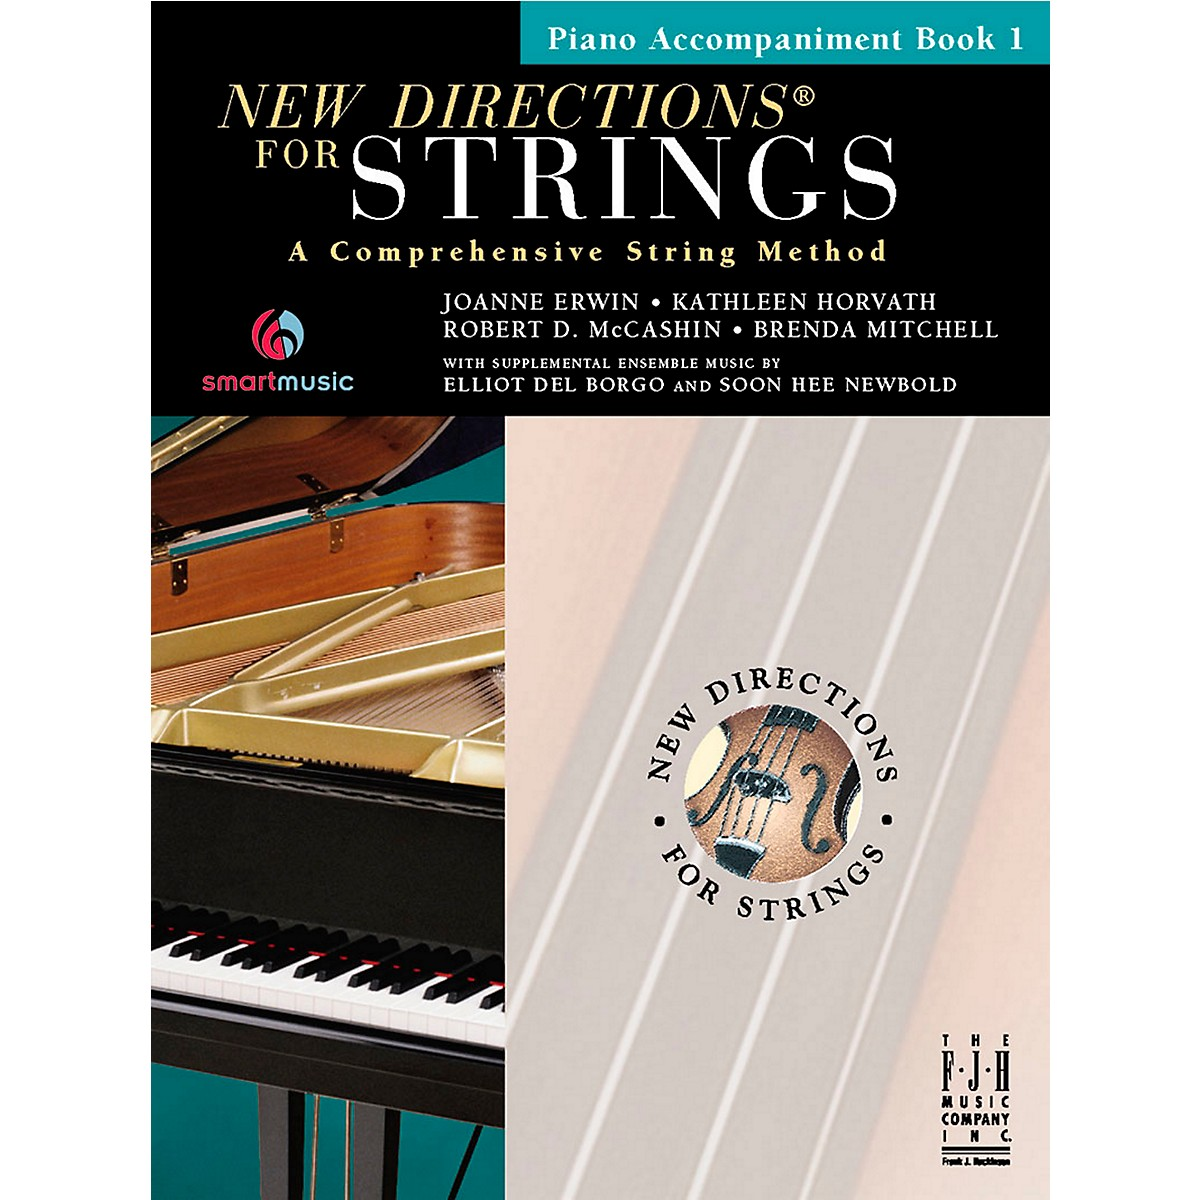 FJH Music New Directions For Strings, Piano Accompaniment Book 1